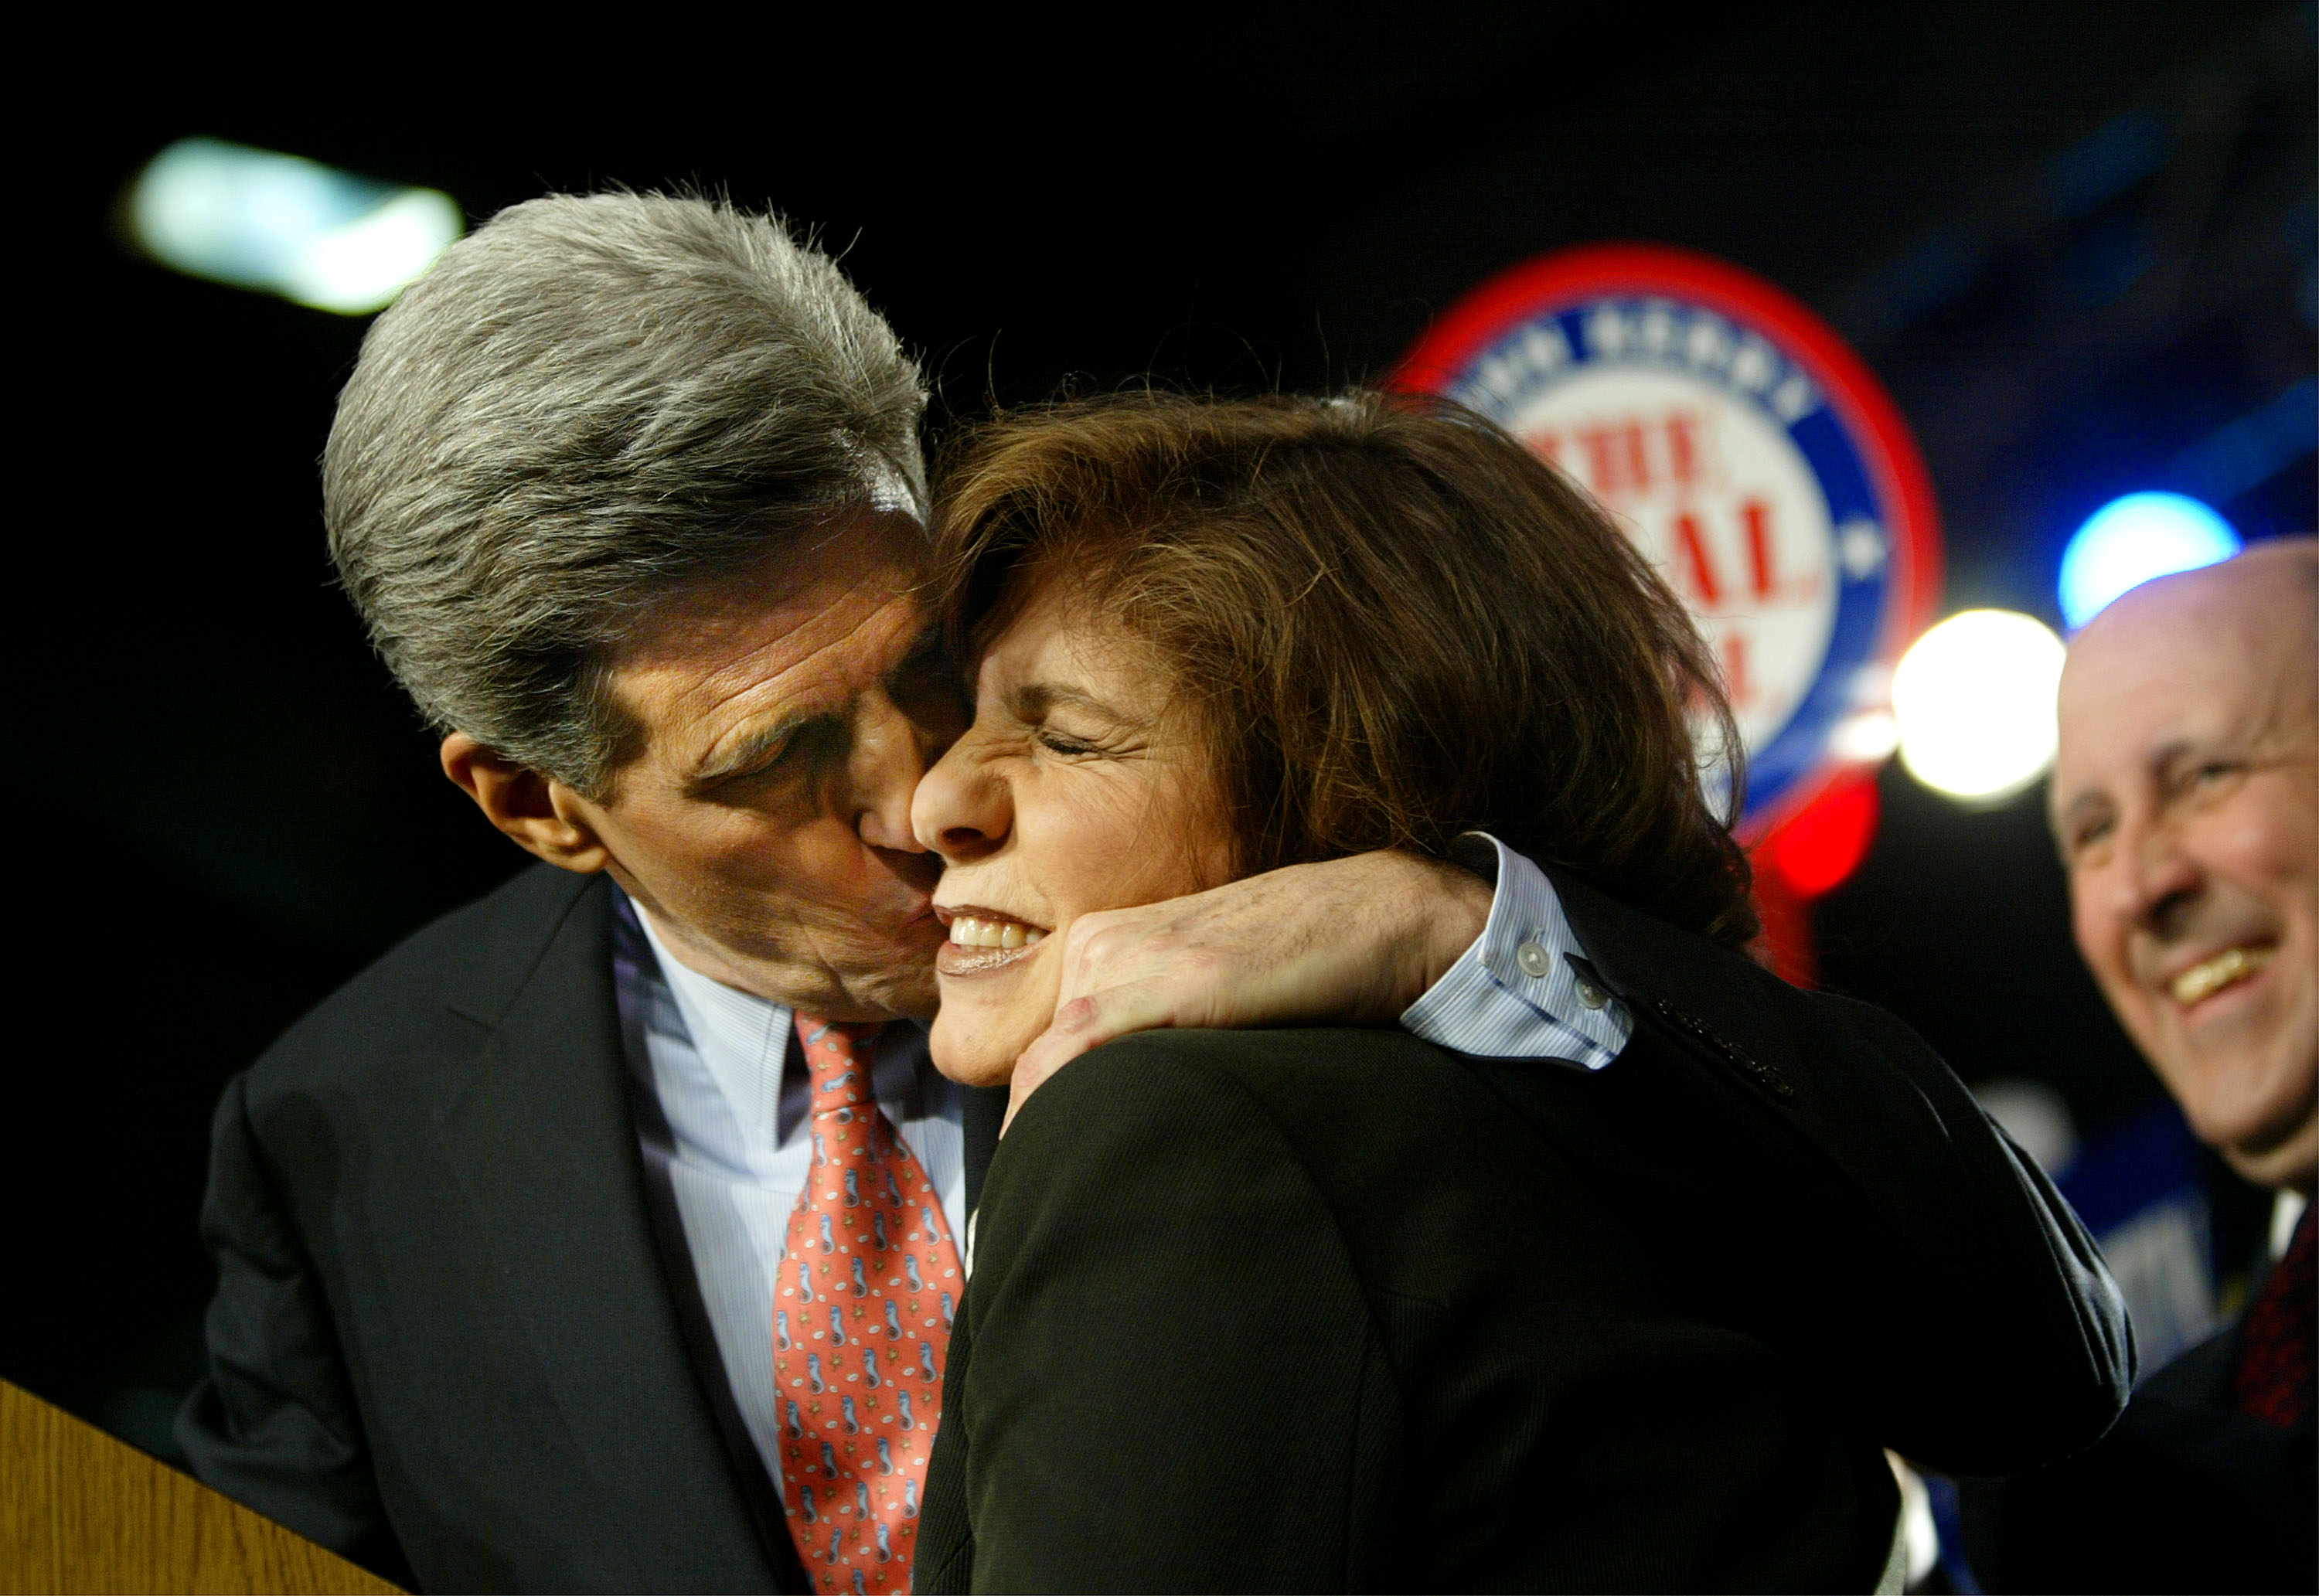 Democratic presidential candidate John Kerry kisses his wife Teresa Heinz Kerry at a victory rally after the U.S. senator from Massachusetts was projected the winner in the Wisconsin primary Feb. 17, 2004 in Madison, Wisc.